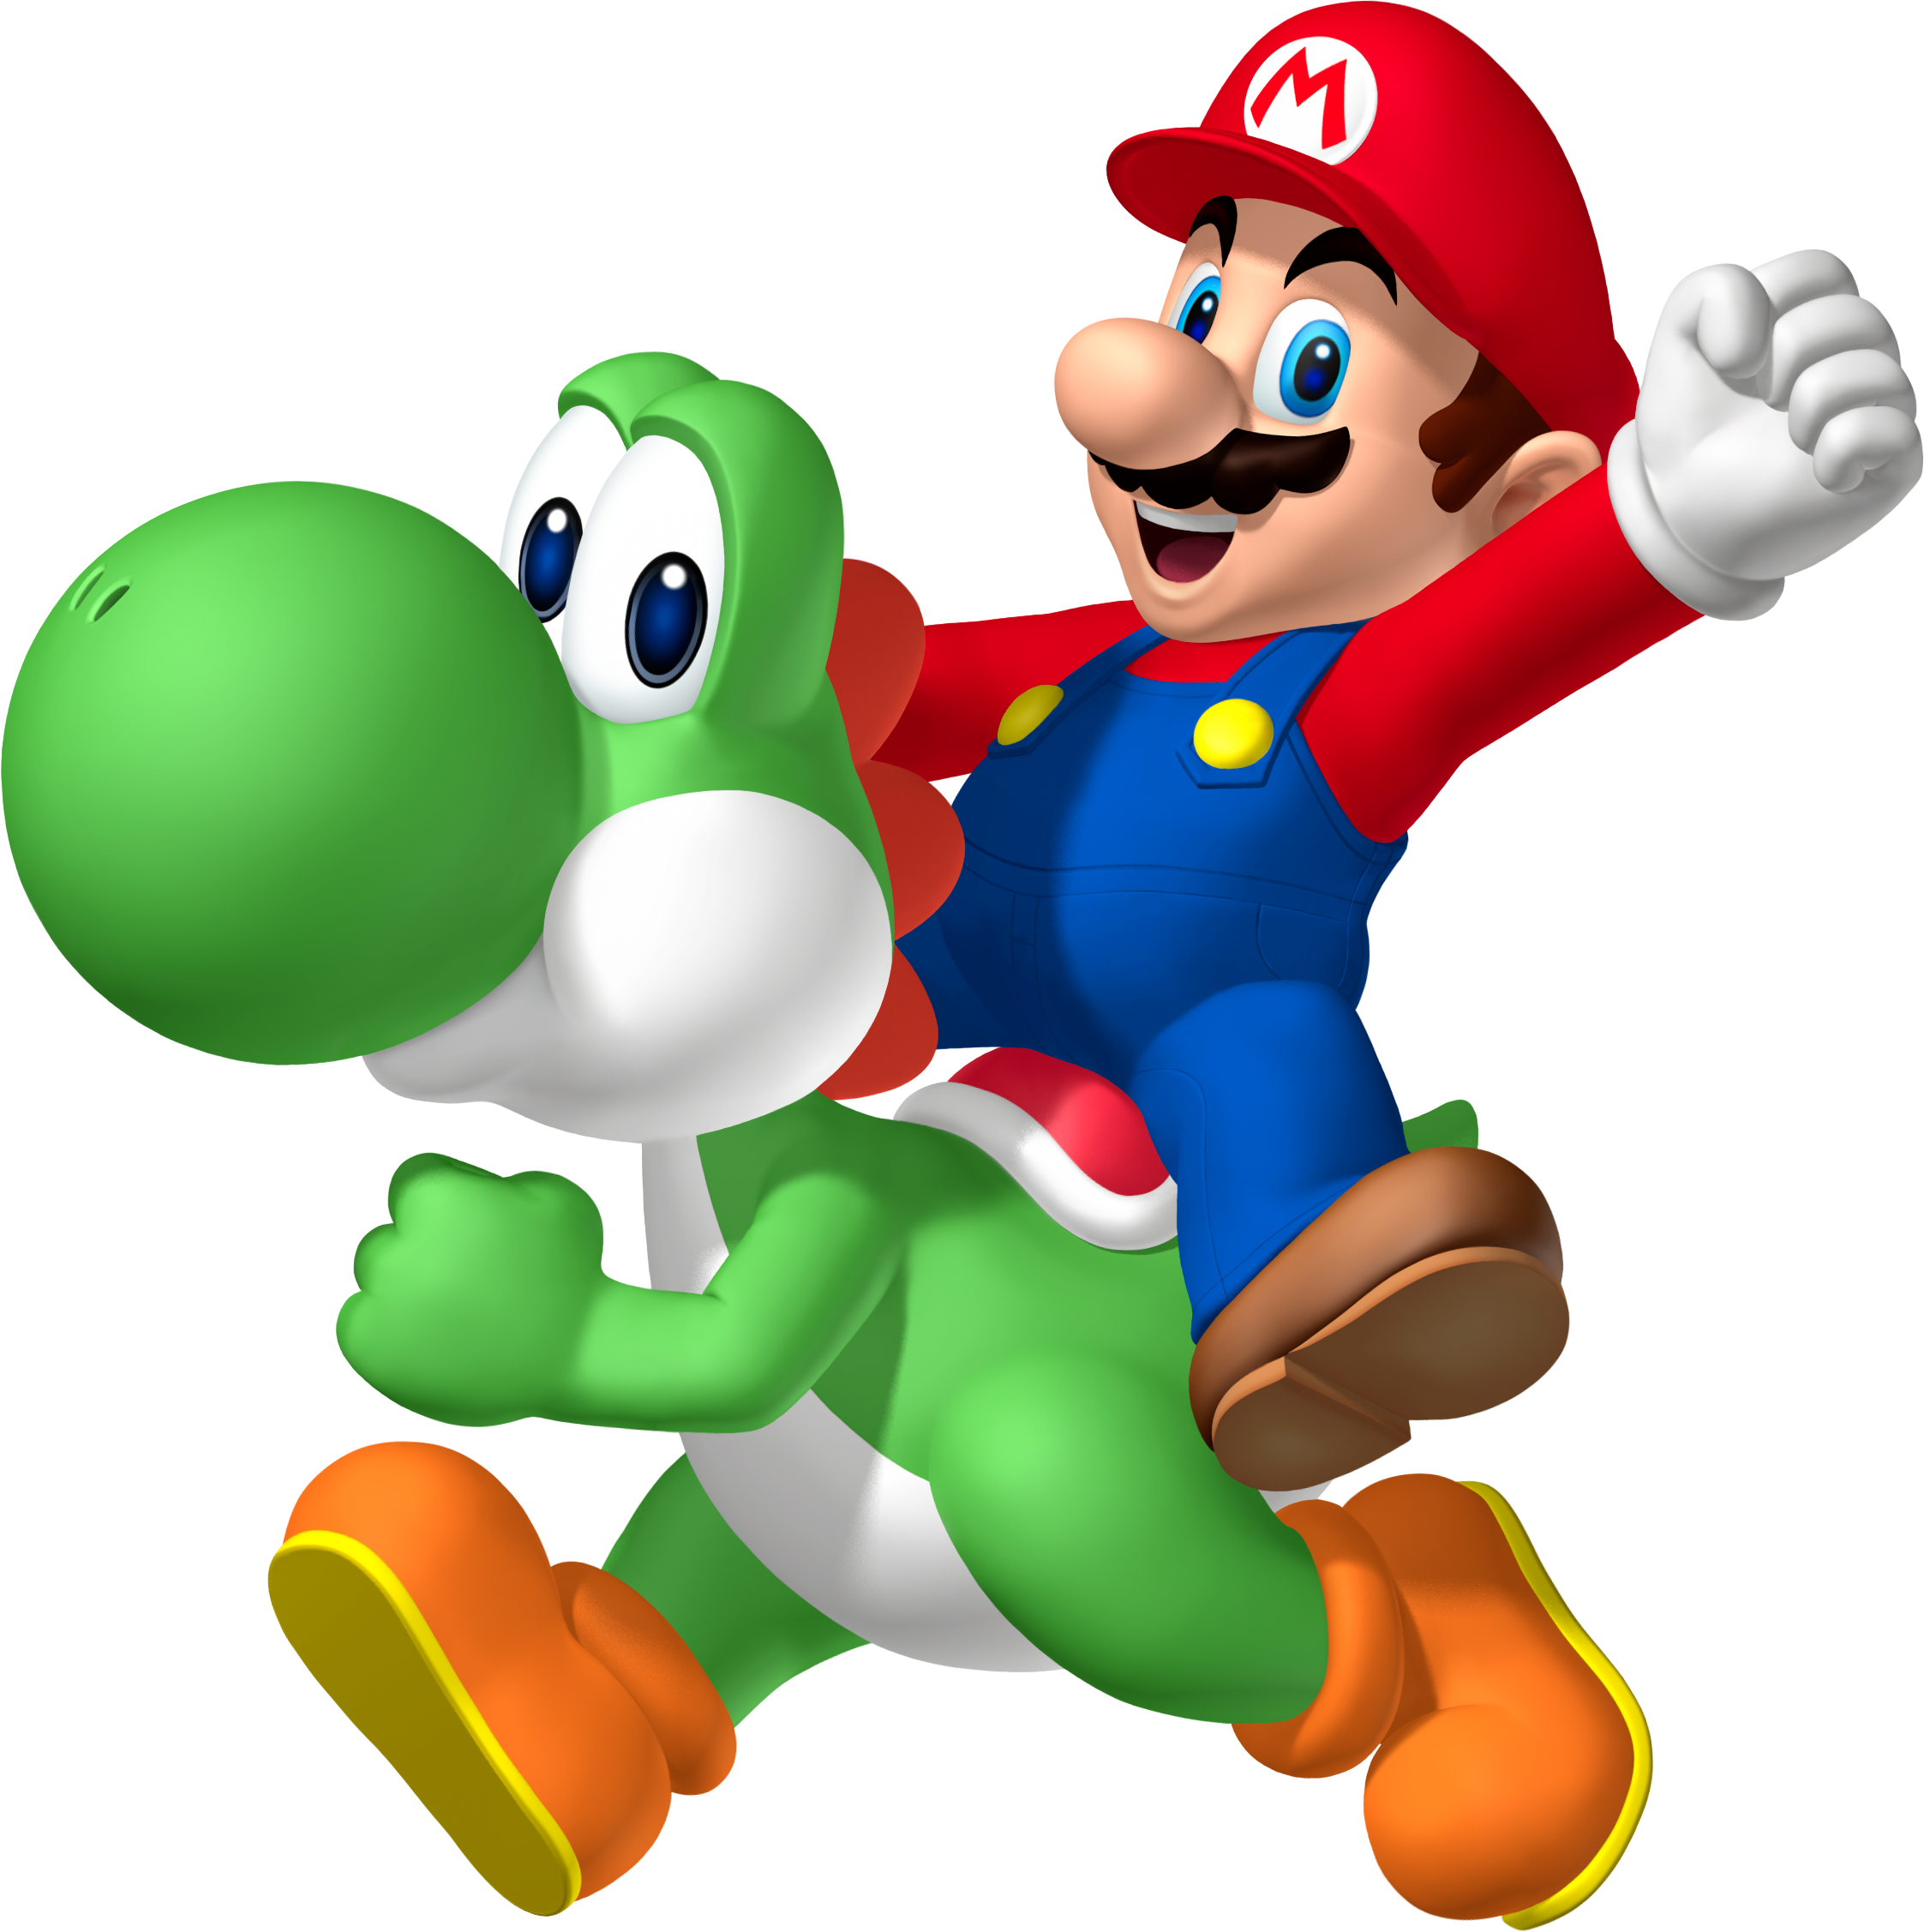 mario bros png transparent mario bros images pluspng #11627